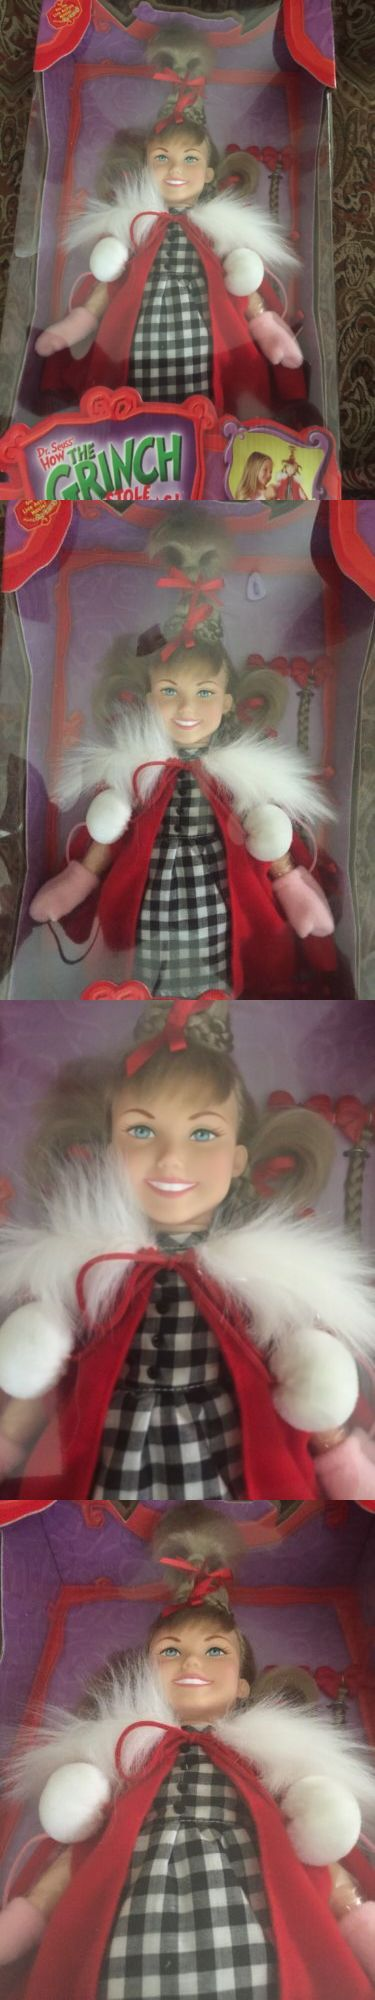 Dr Seuss 20906: Dr. Seuss How The Grinch Stole Christmas Cindy Lou Who Doll -> BUY IT NOW ONLY: $42.99 on eBay!